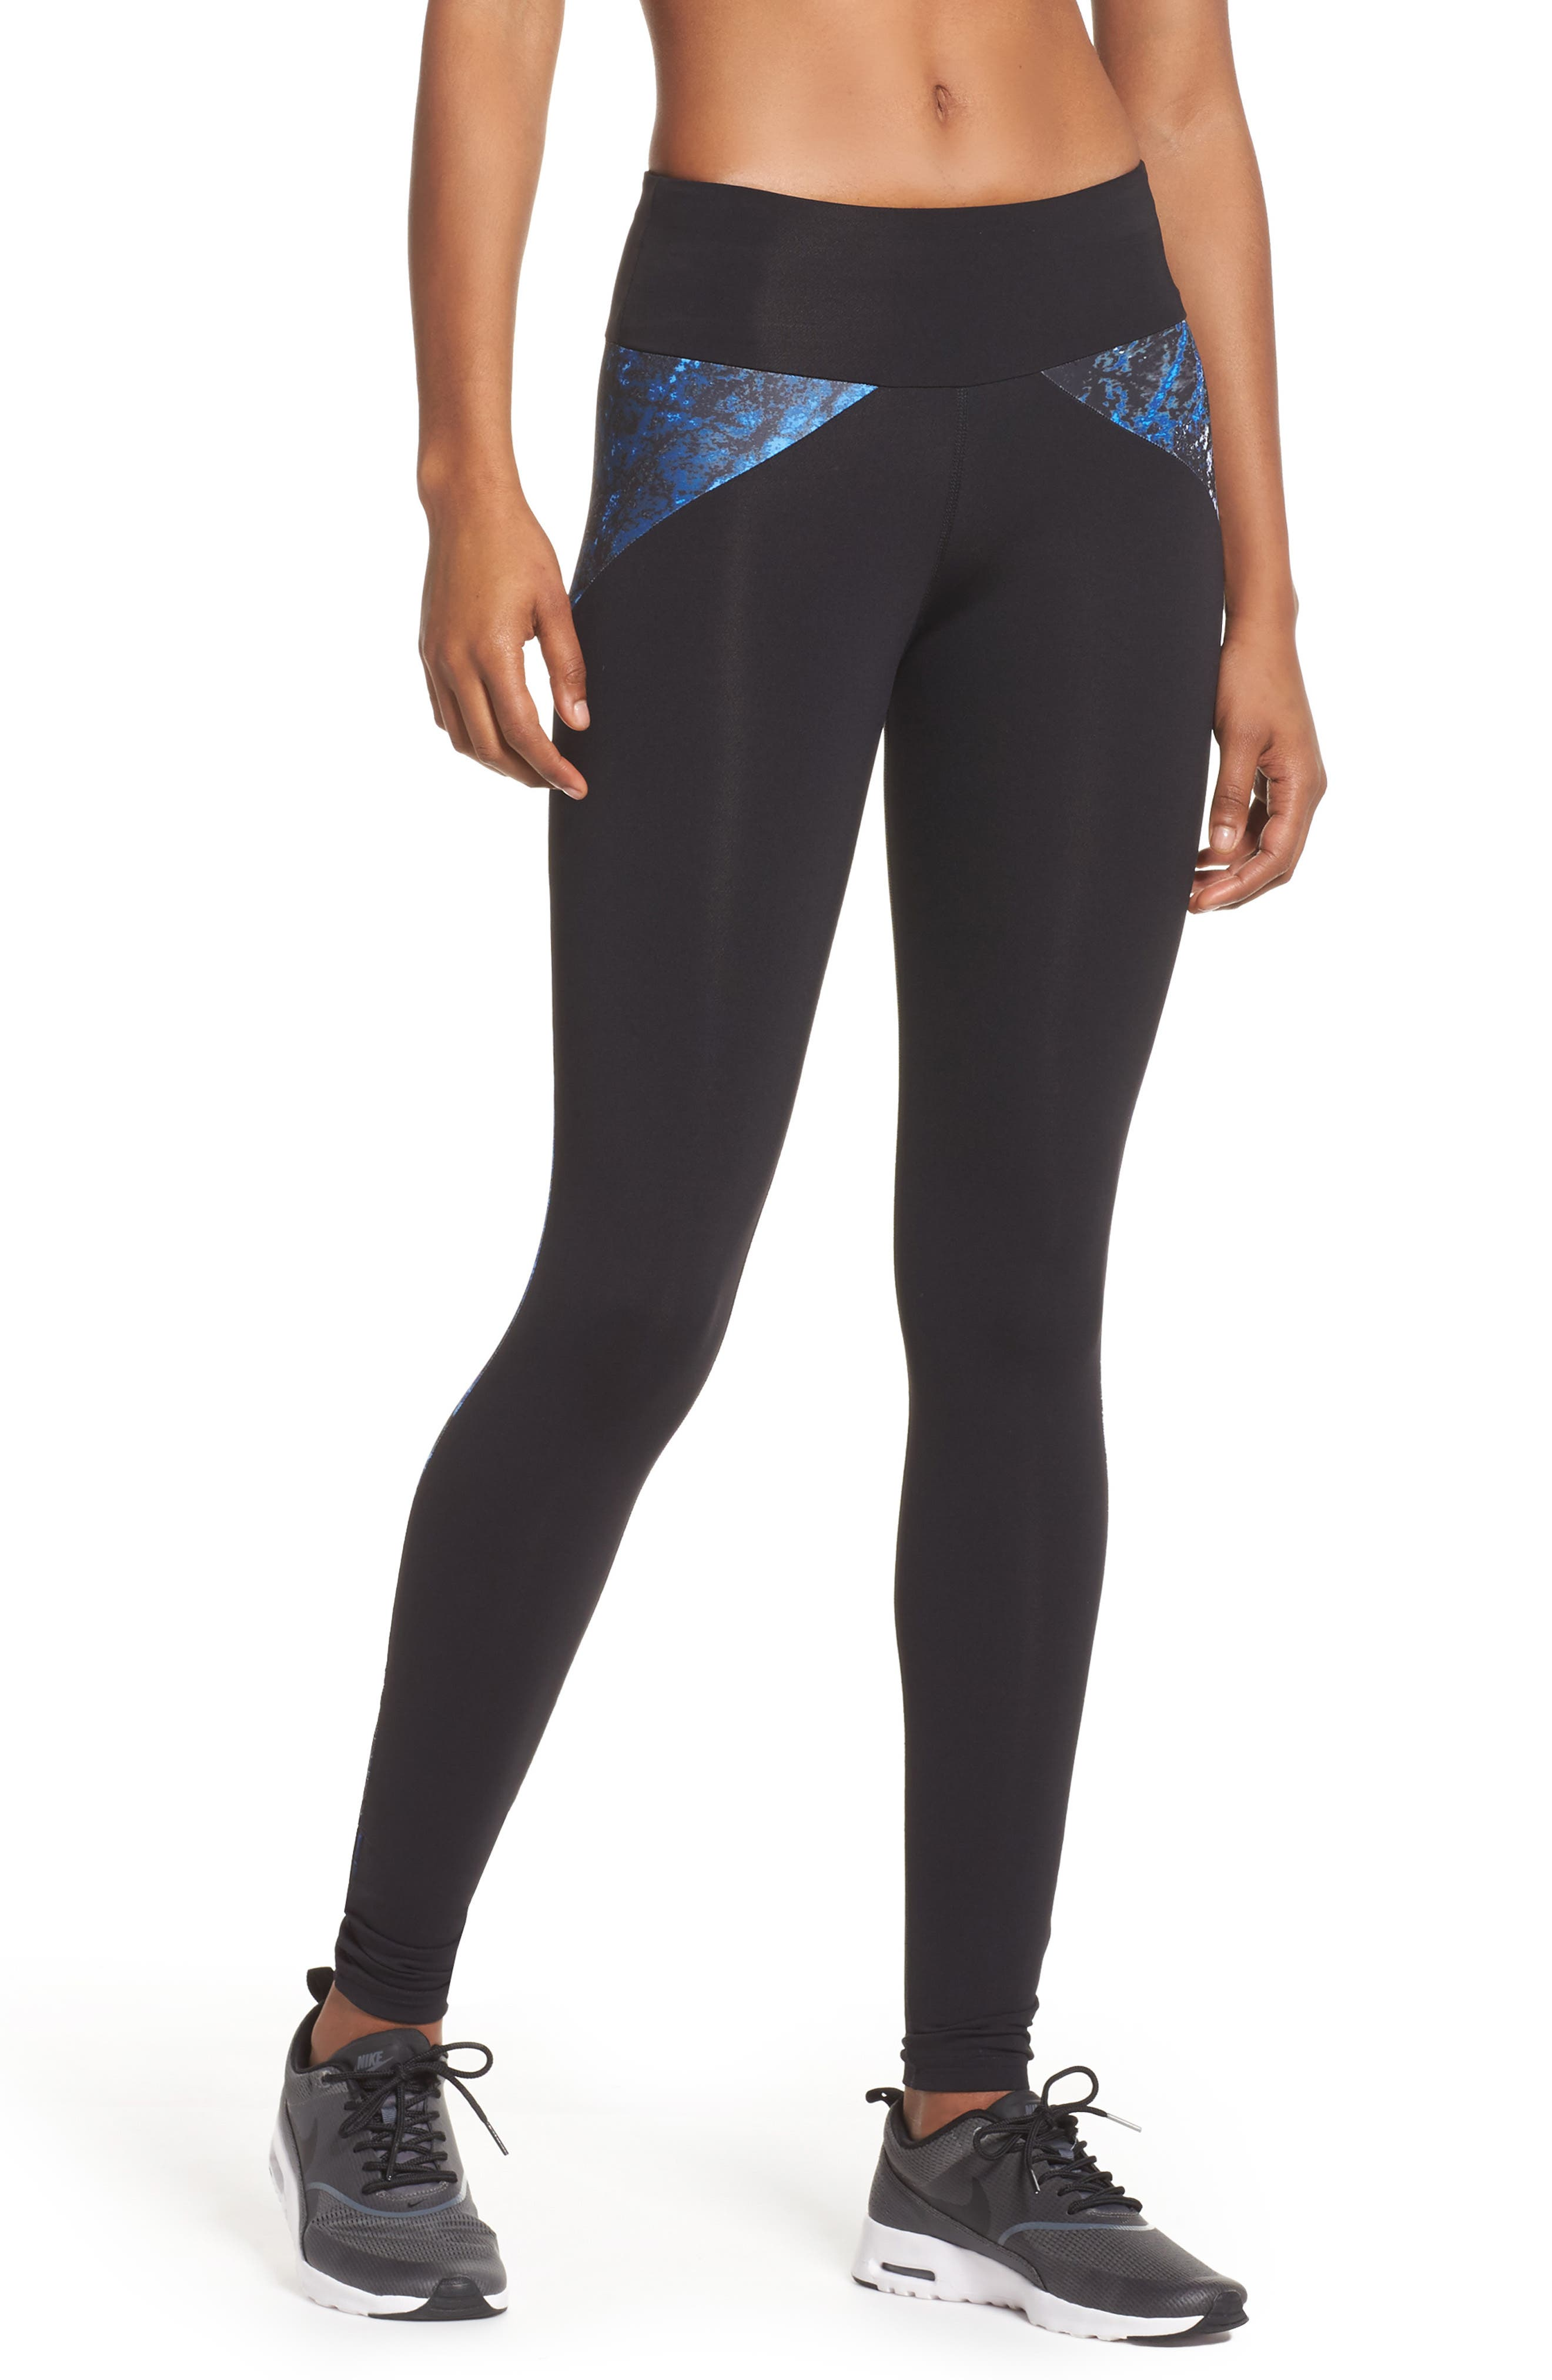 Alternate Image 1 Selected - BoomBoom Athletica Colorblock Leggings